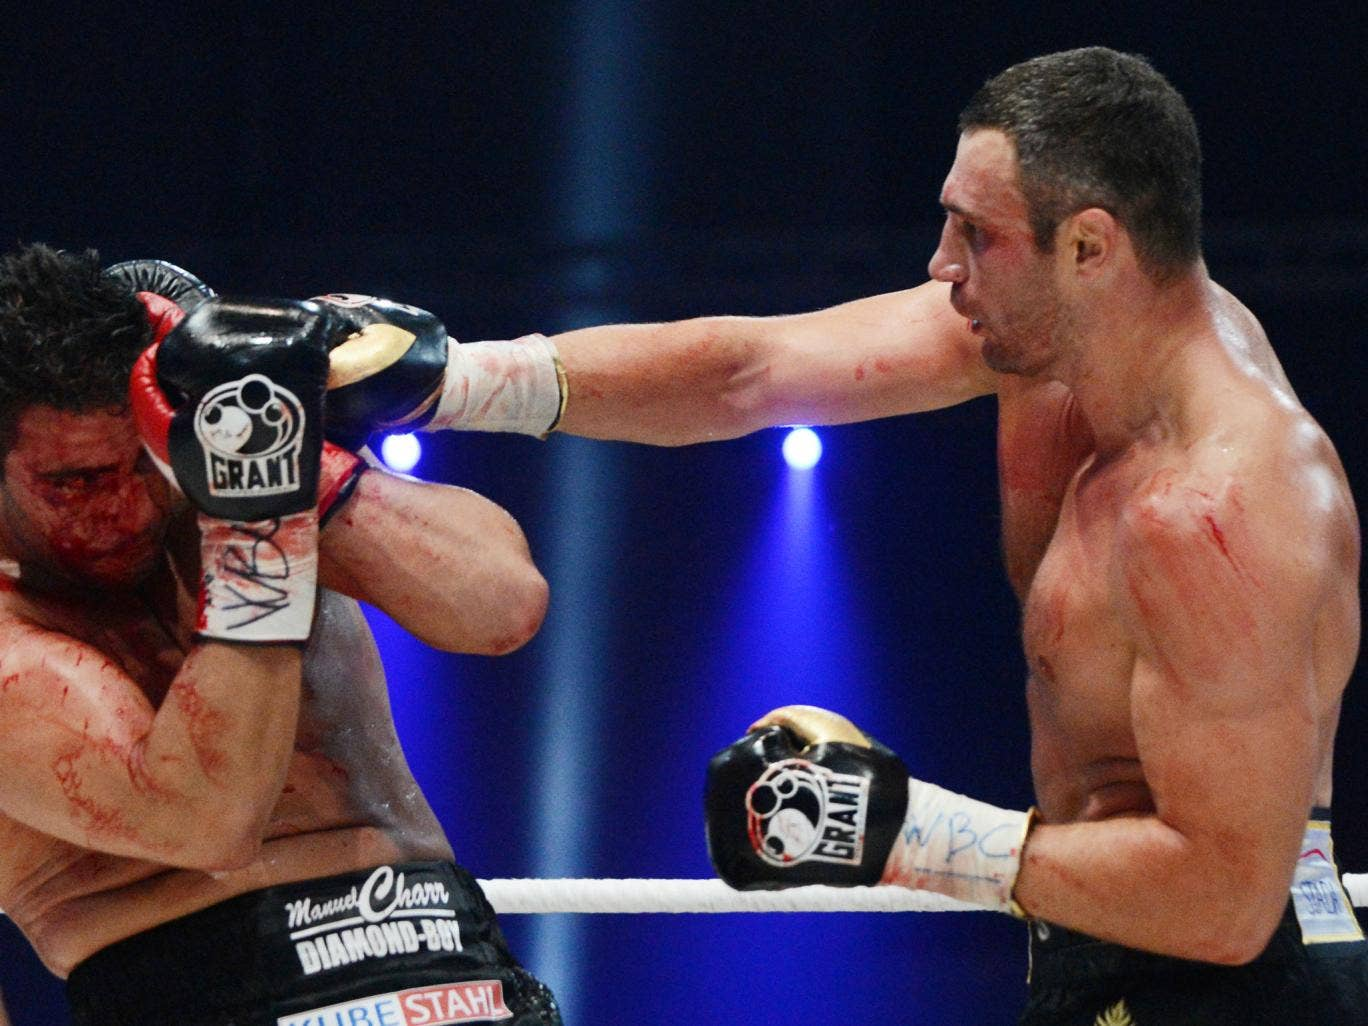 Vitali Klitschko fighting for the defense of his WBC heavyweight title against Germany's Manuel Charr in 2012